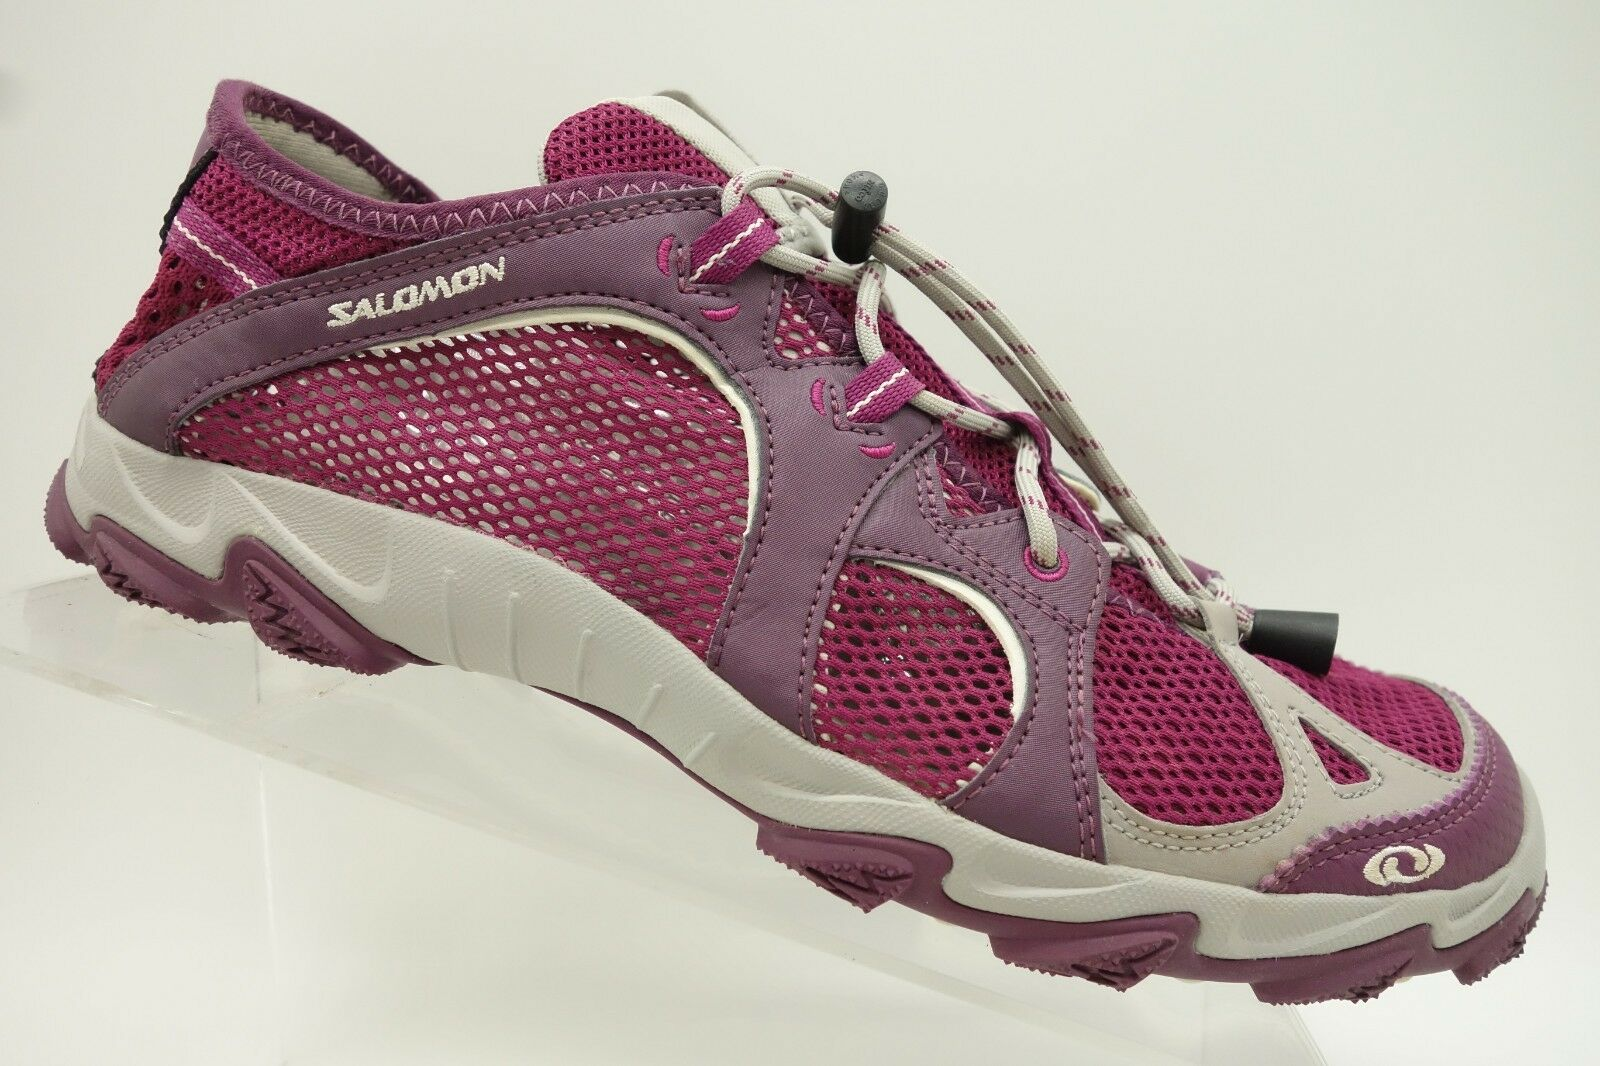 Salomon Purple Mesh Casual Athletic Sneaker shoes Womens 9.5